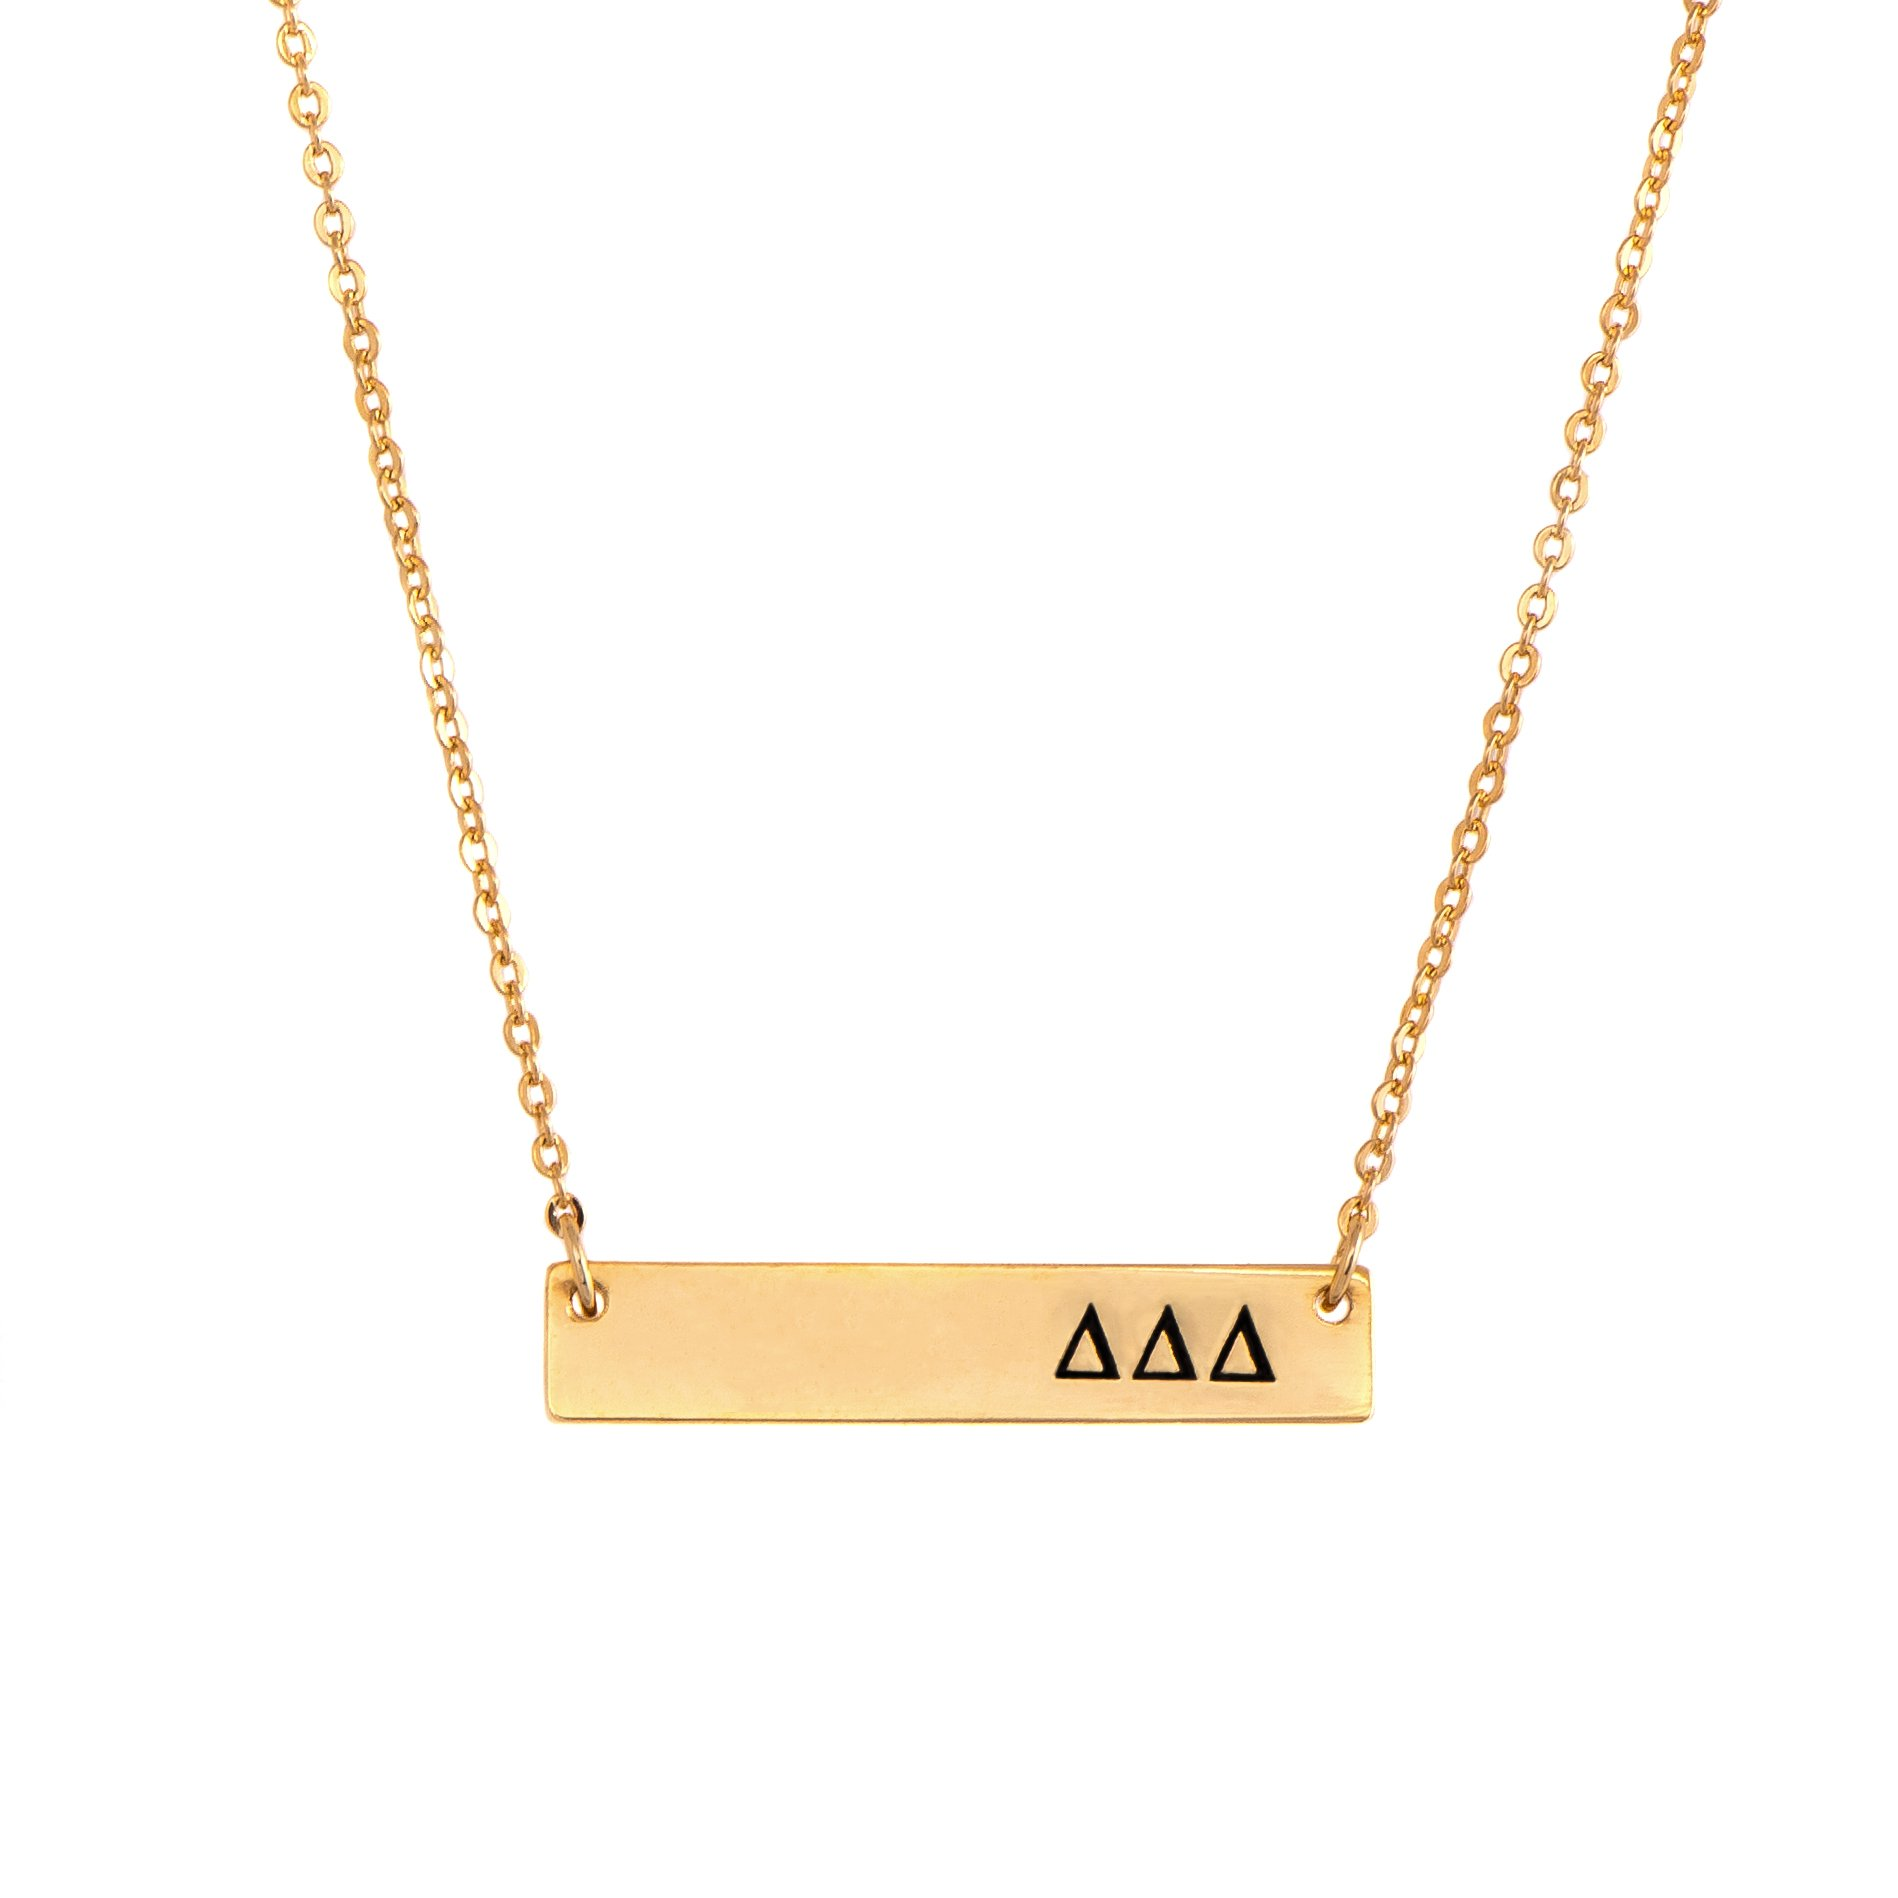 Delta Delta Delta Tri-Delt 24K Gold Plated Horizontal Bar Necklace Greek Sorority Letter with Adjustable Chain by Greek Life Stuff